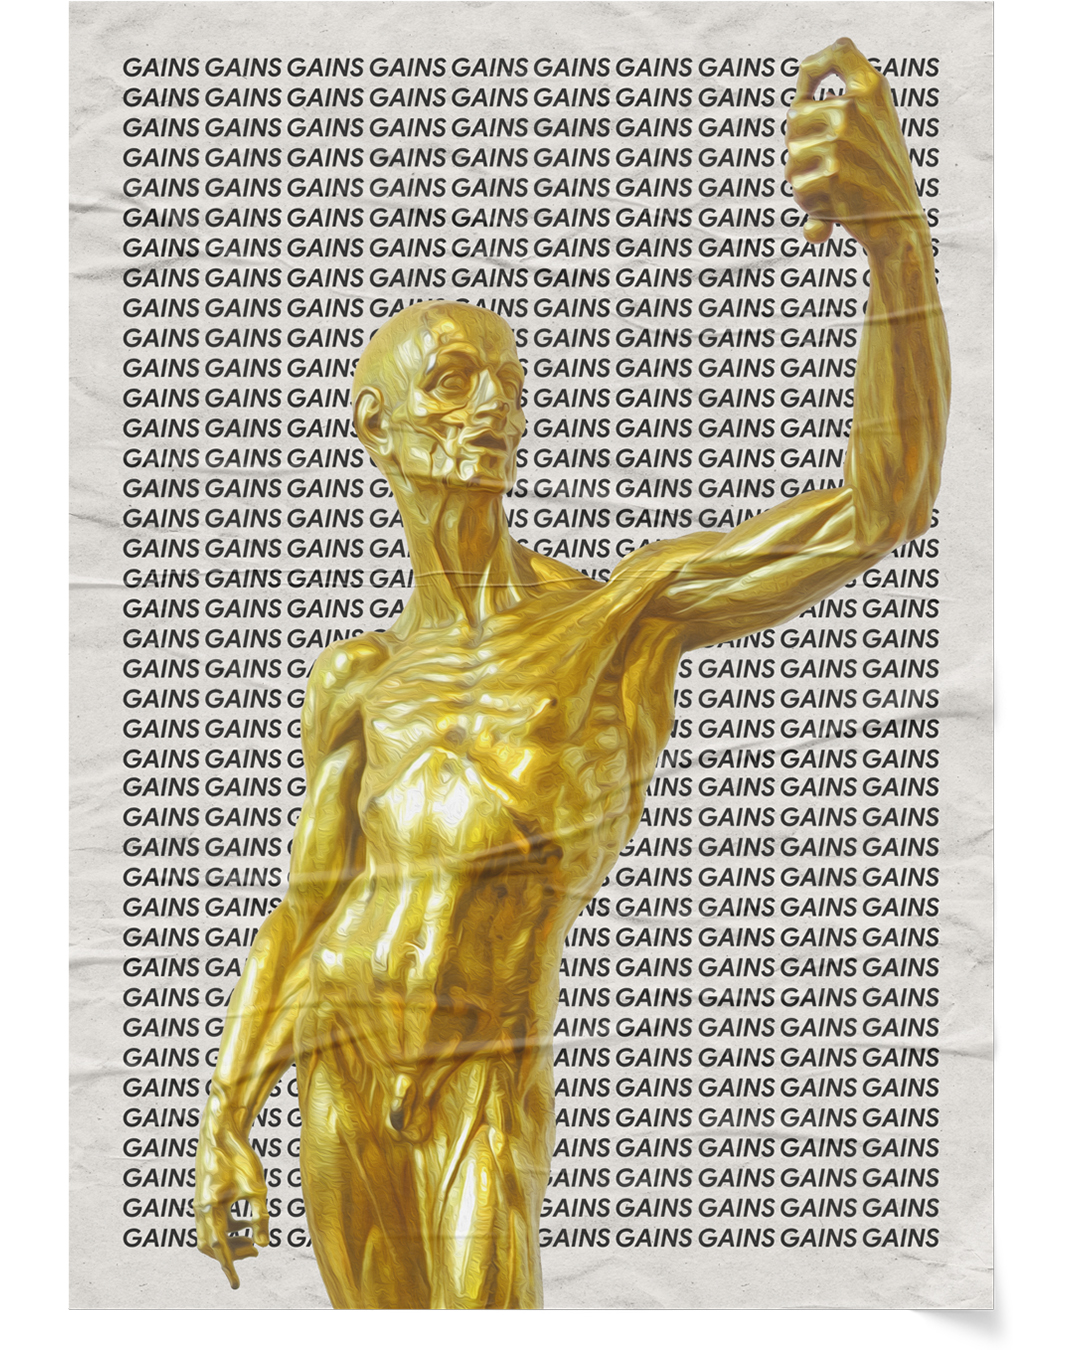 Golden statue of Muscleman by Jean-Antoine Houdon over black text on white backgound